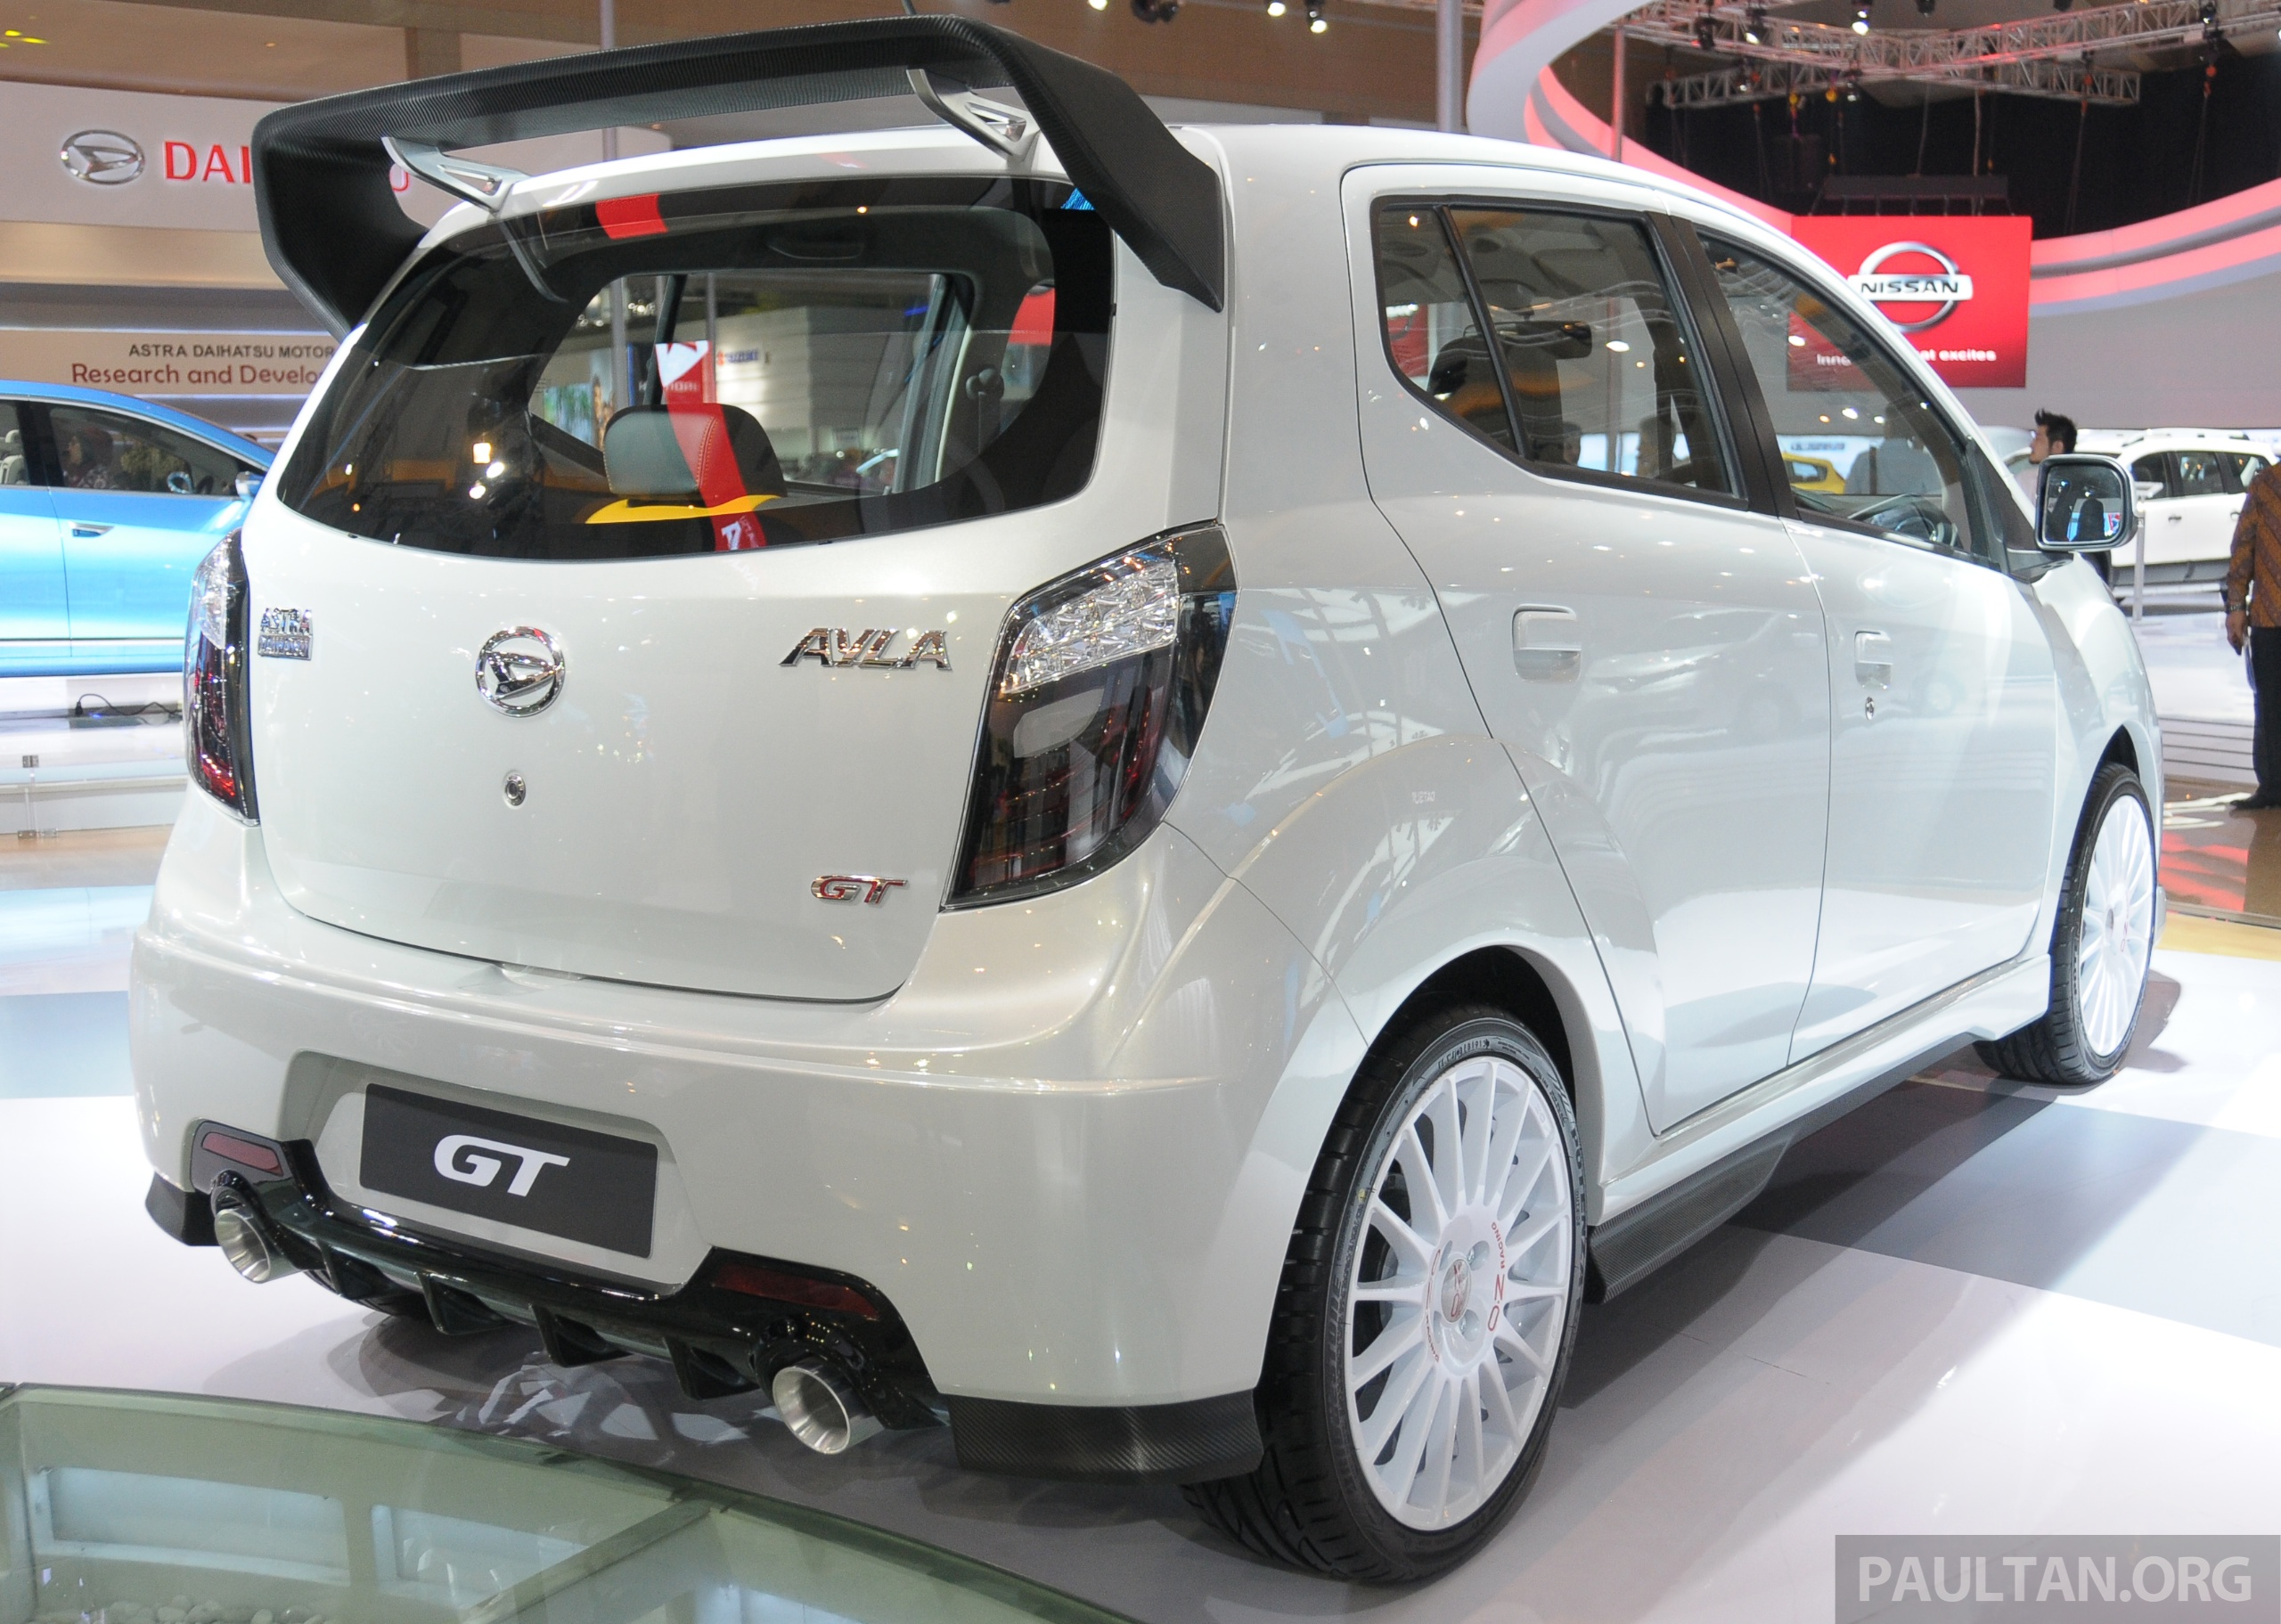 Daihatsu Ayla GT, Luxury and X-Track concepts